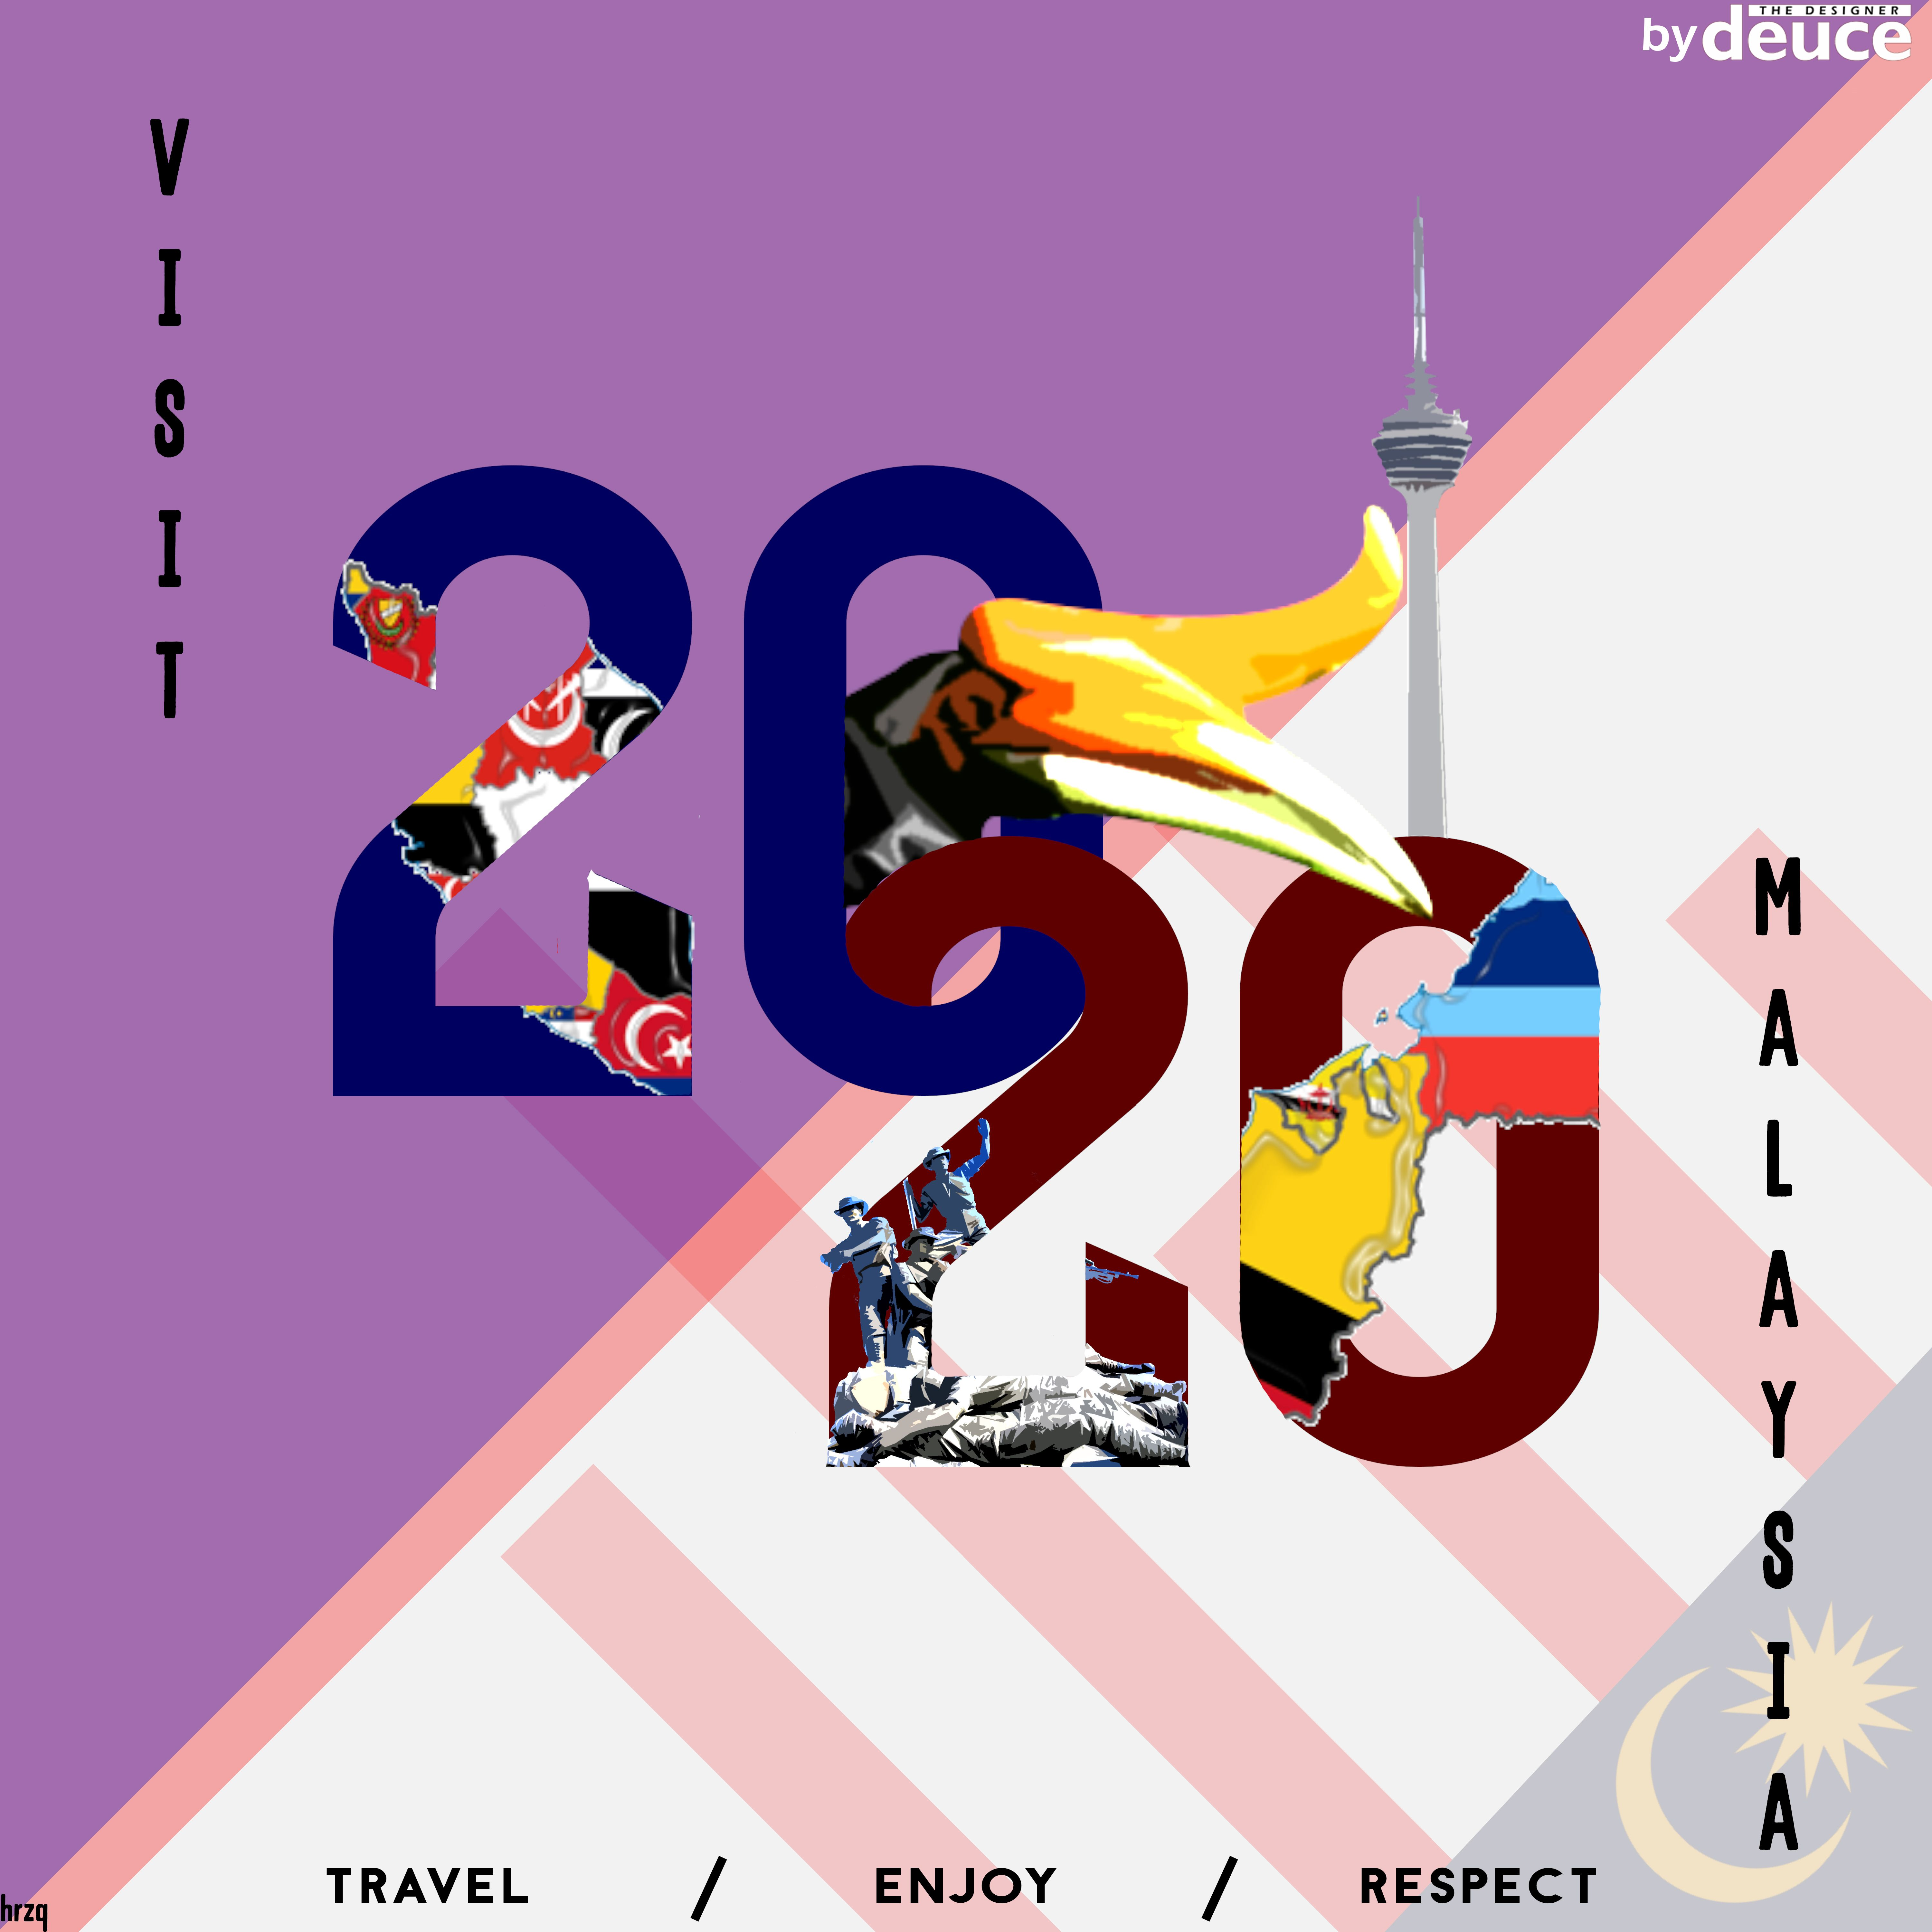 New Ideas In Tourism 2020 visit malaysia 2020 redesign logo | Ideationator | Movie posters